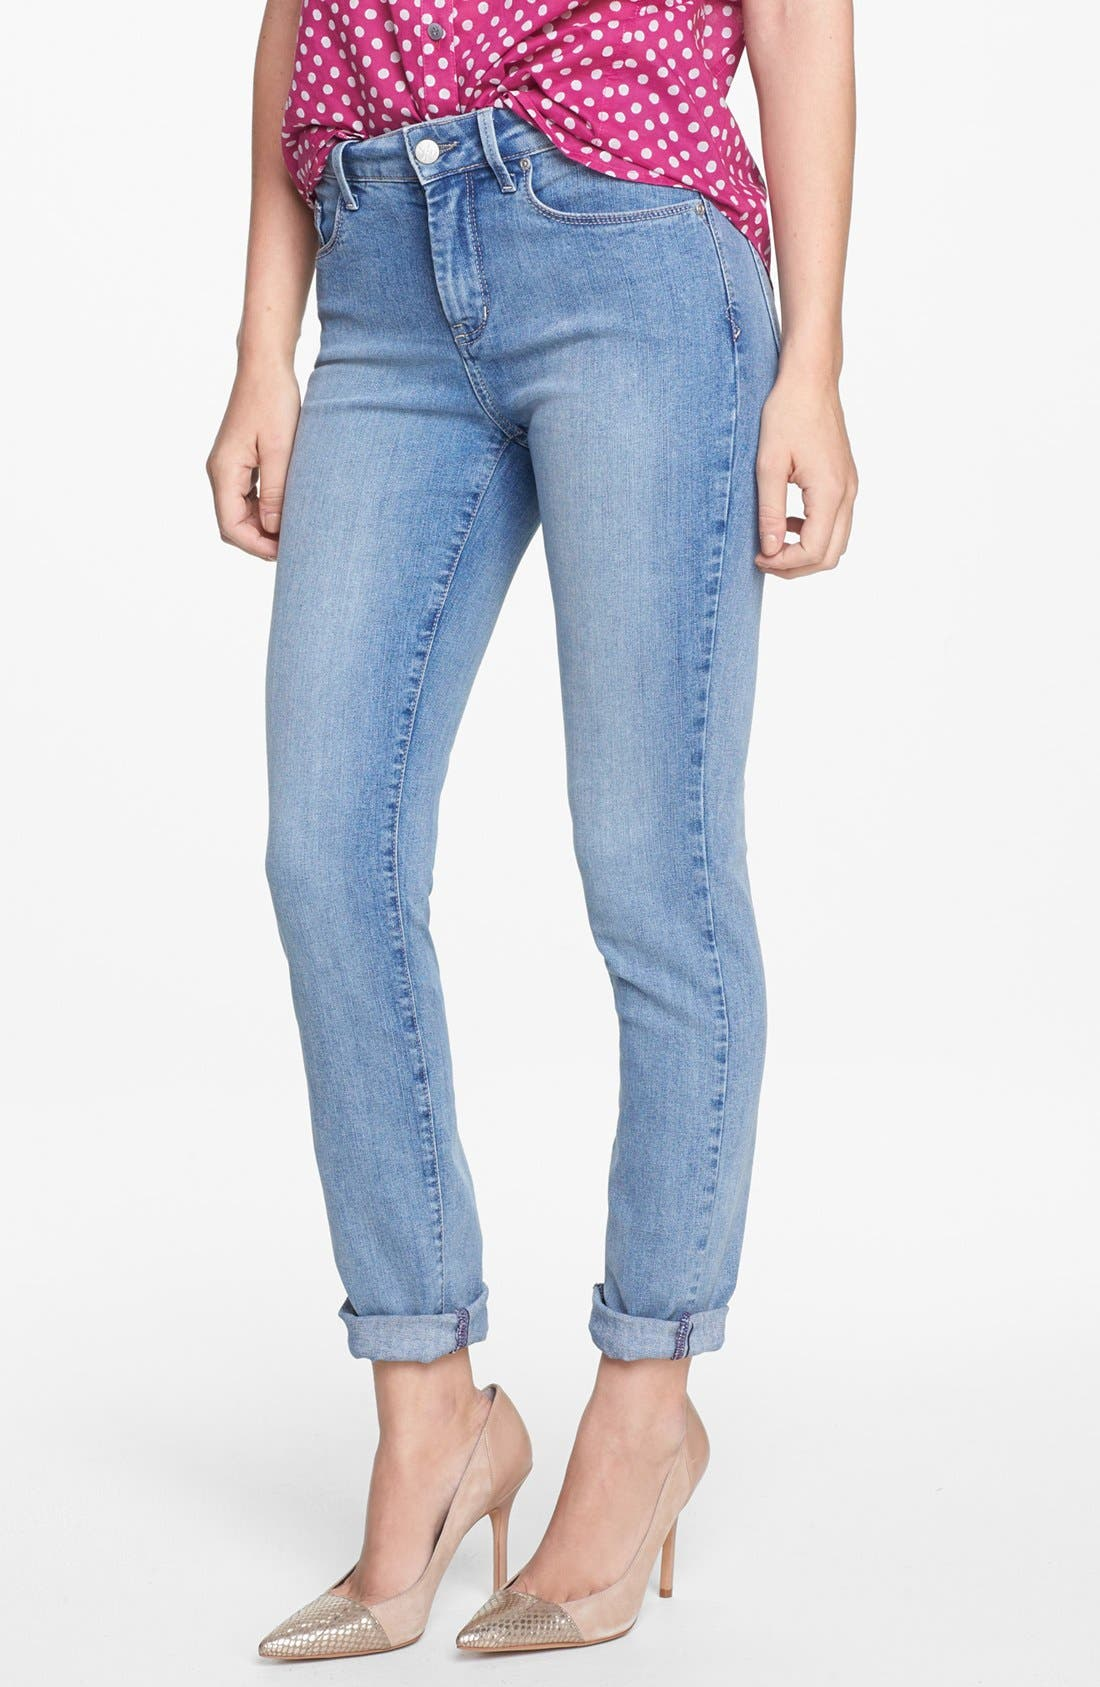 Alternate Image 1 Selected - NYDJ 'Anabelle' Stretch Skinny Jeans (Sacramento)